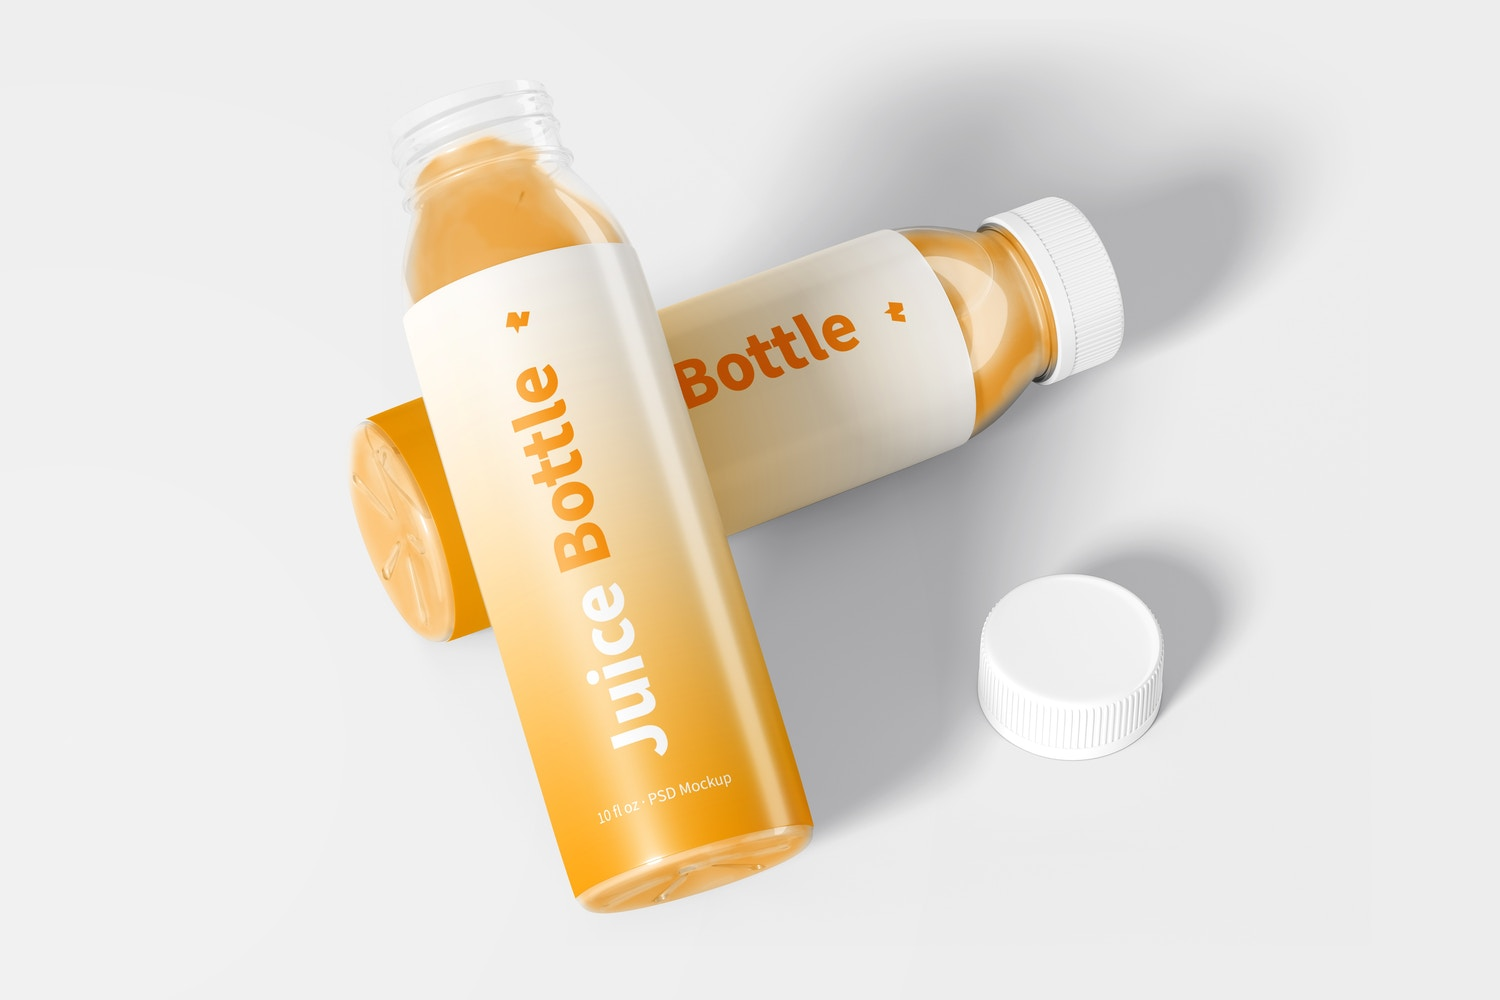 10 oz Clear PET Juice Bottles Mockup, Opened and Closed